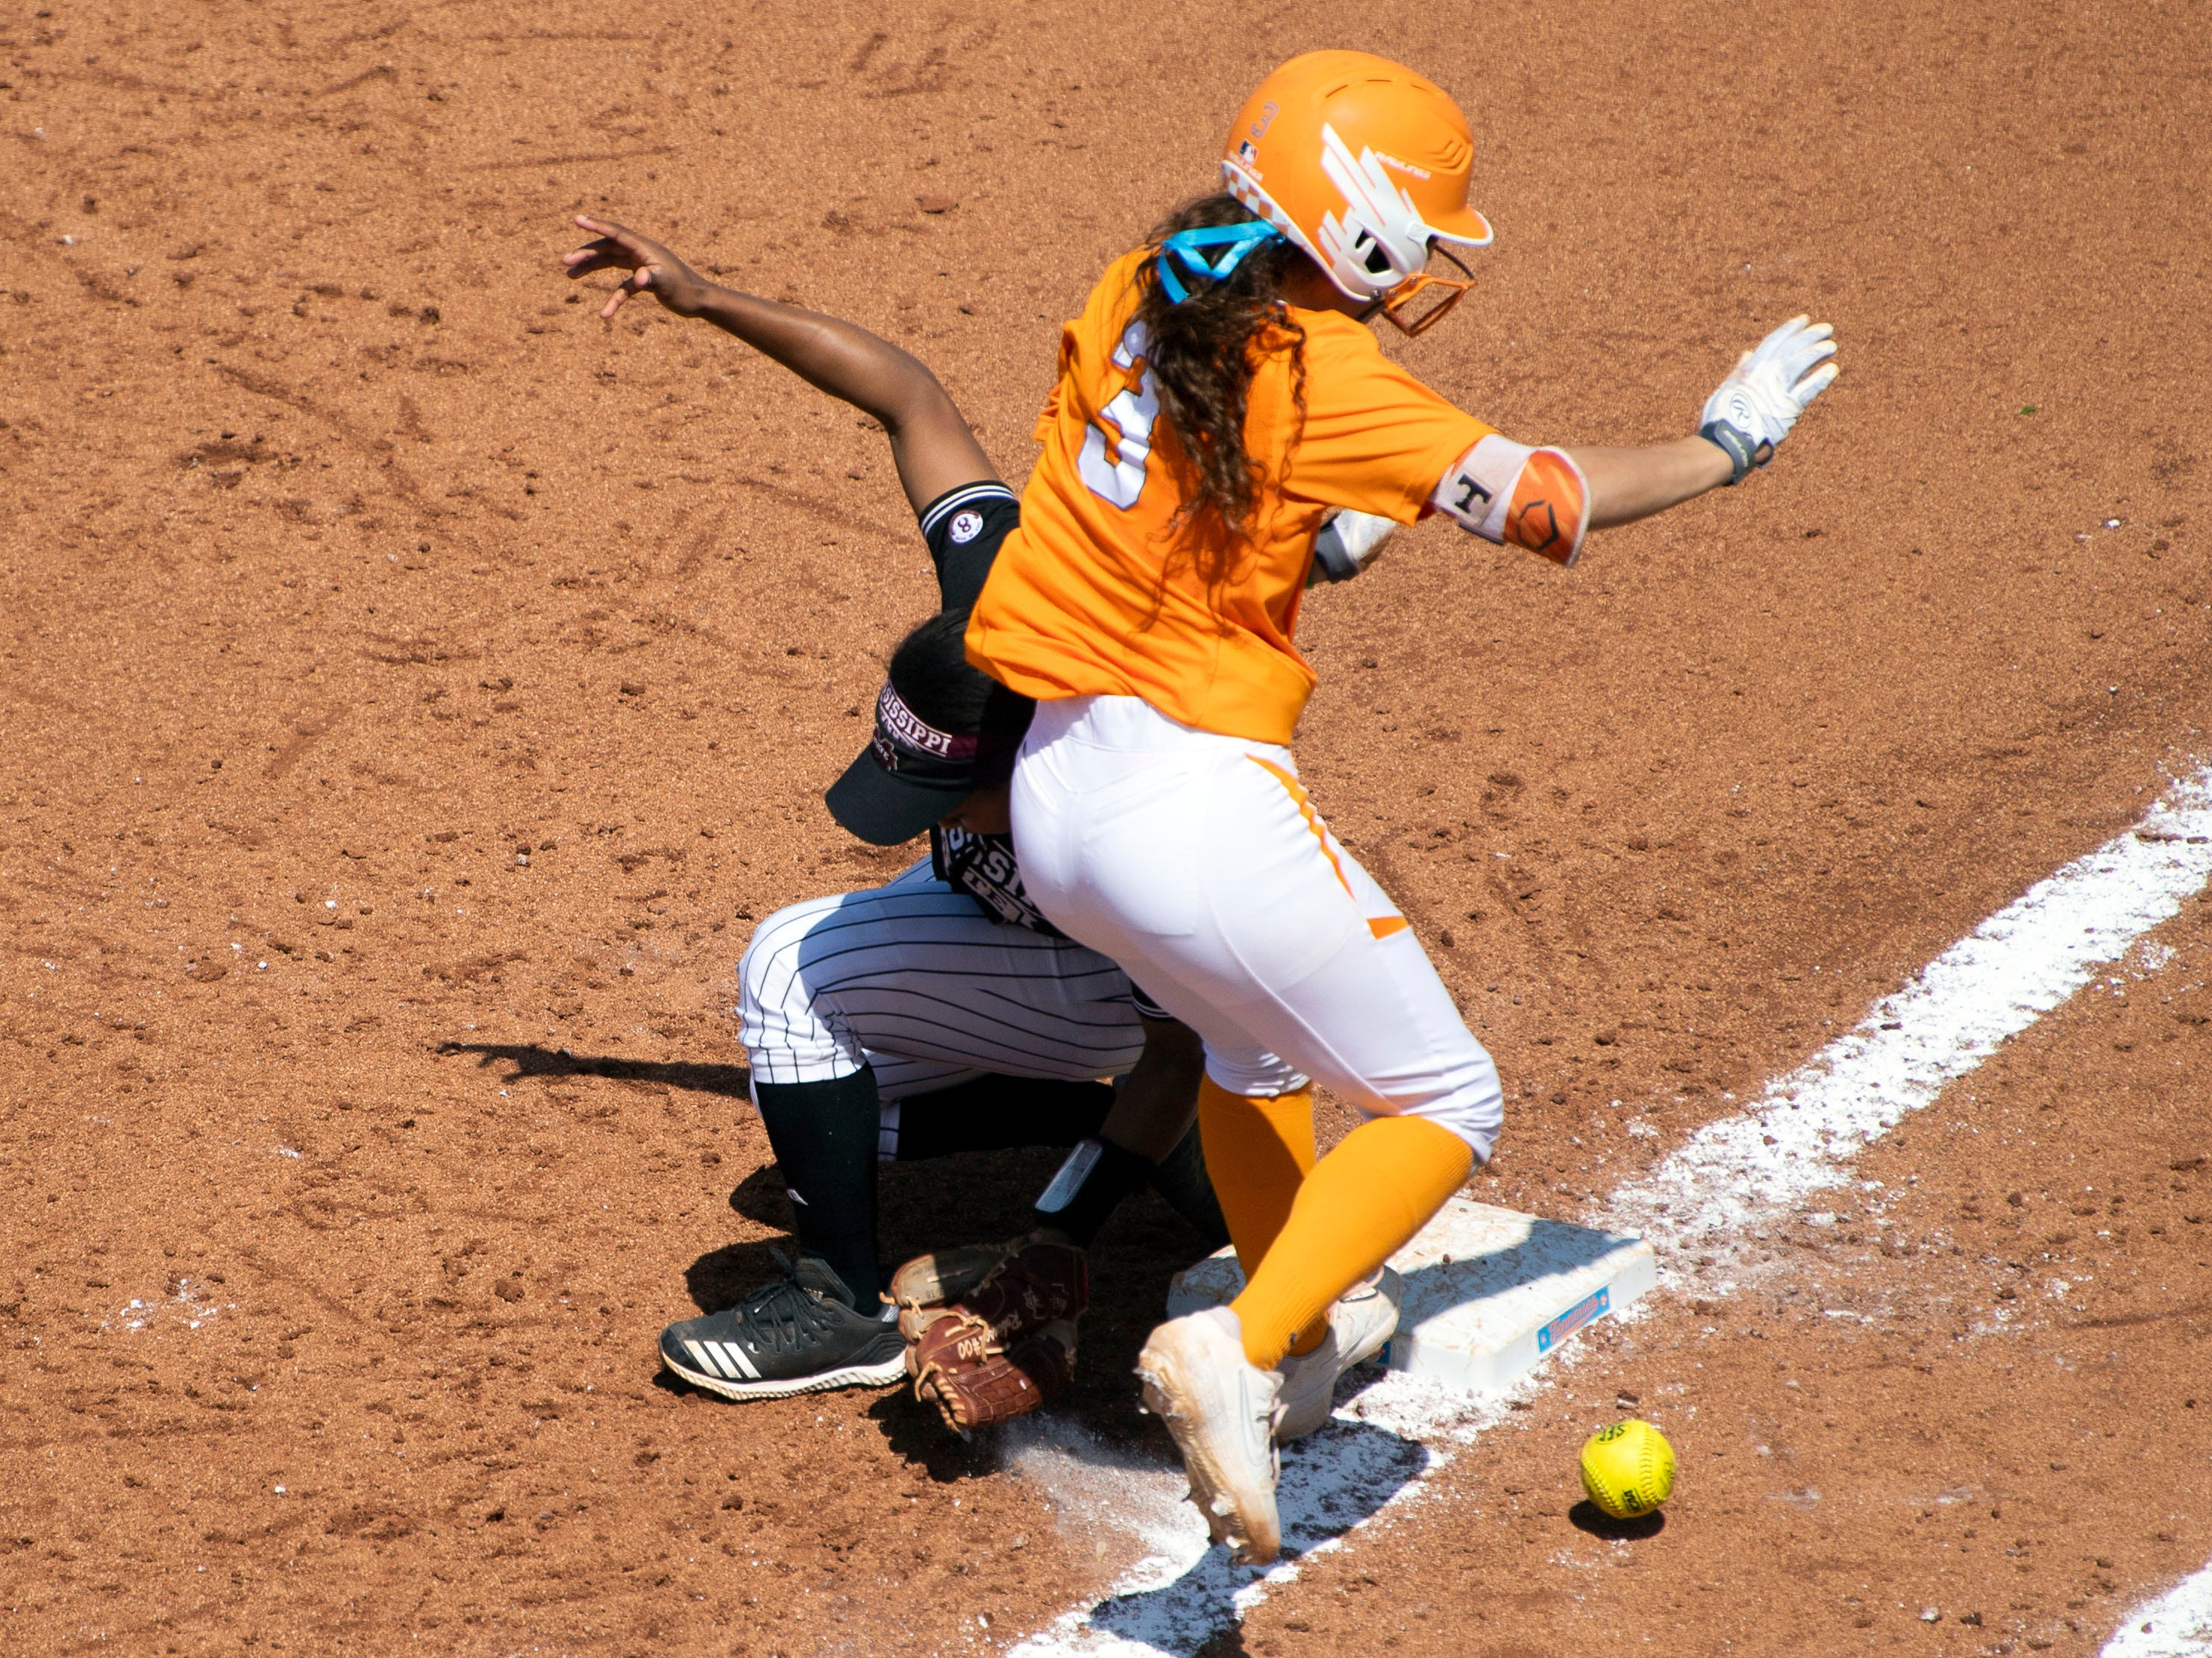 The ballnounces away as Tennessee's Kaitlin Parsons (3) gets to first base and then onto third with on a bunt play that resulted in two runs for Tennessee in the game against Mississippi State on Sunday, April 14, 2019.